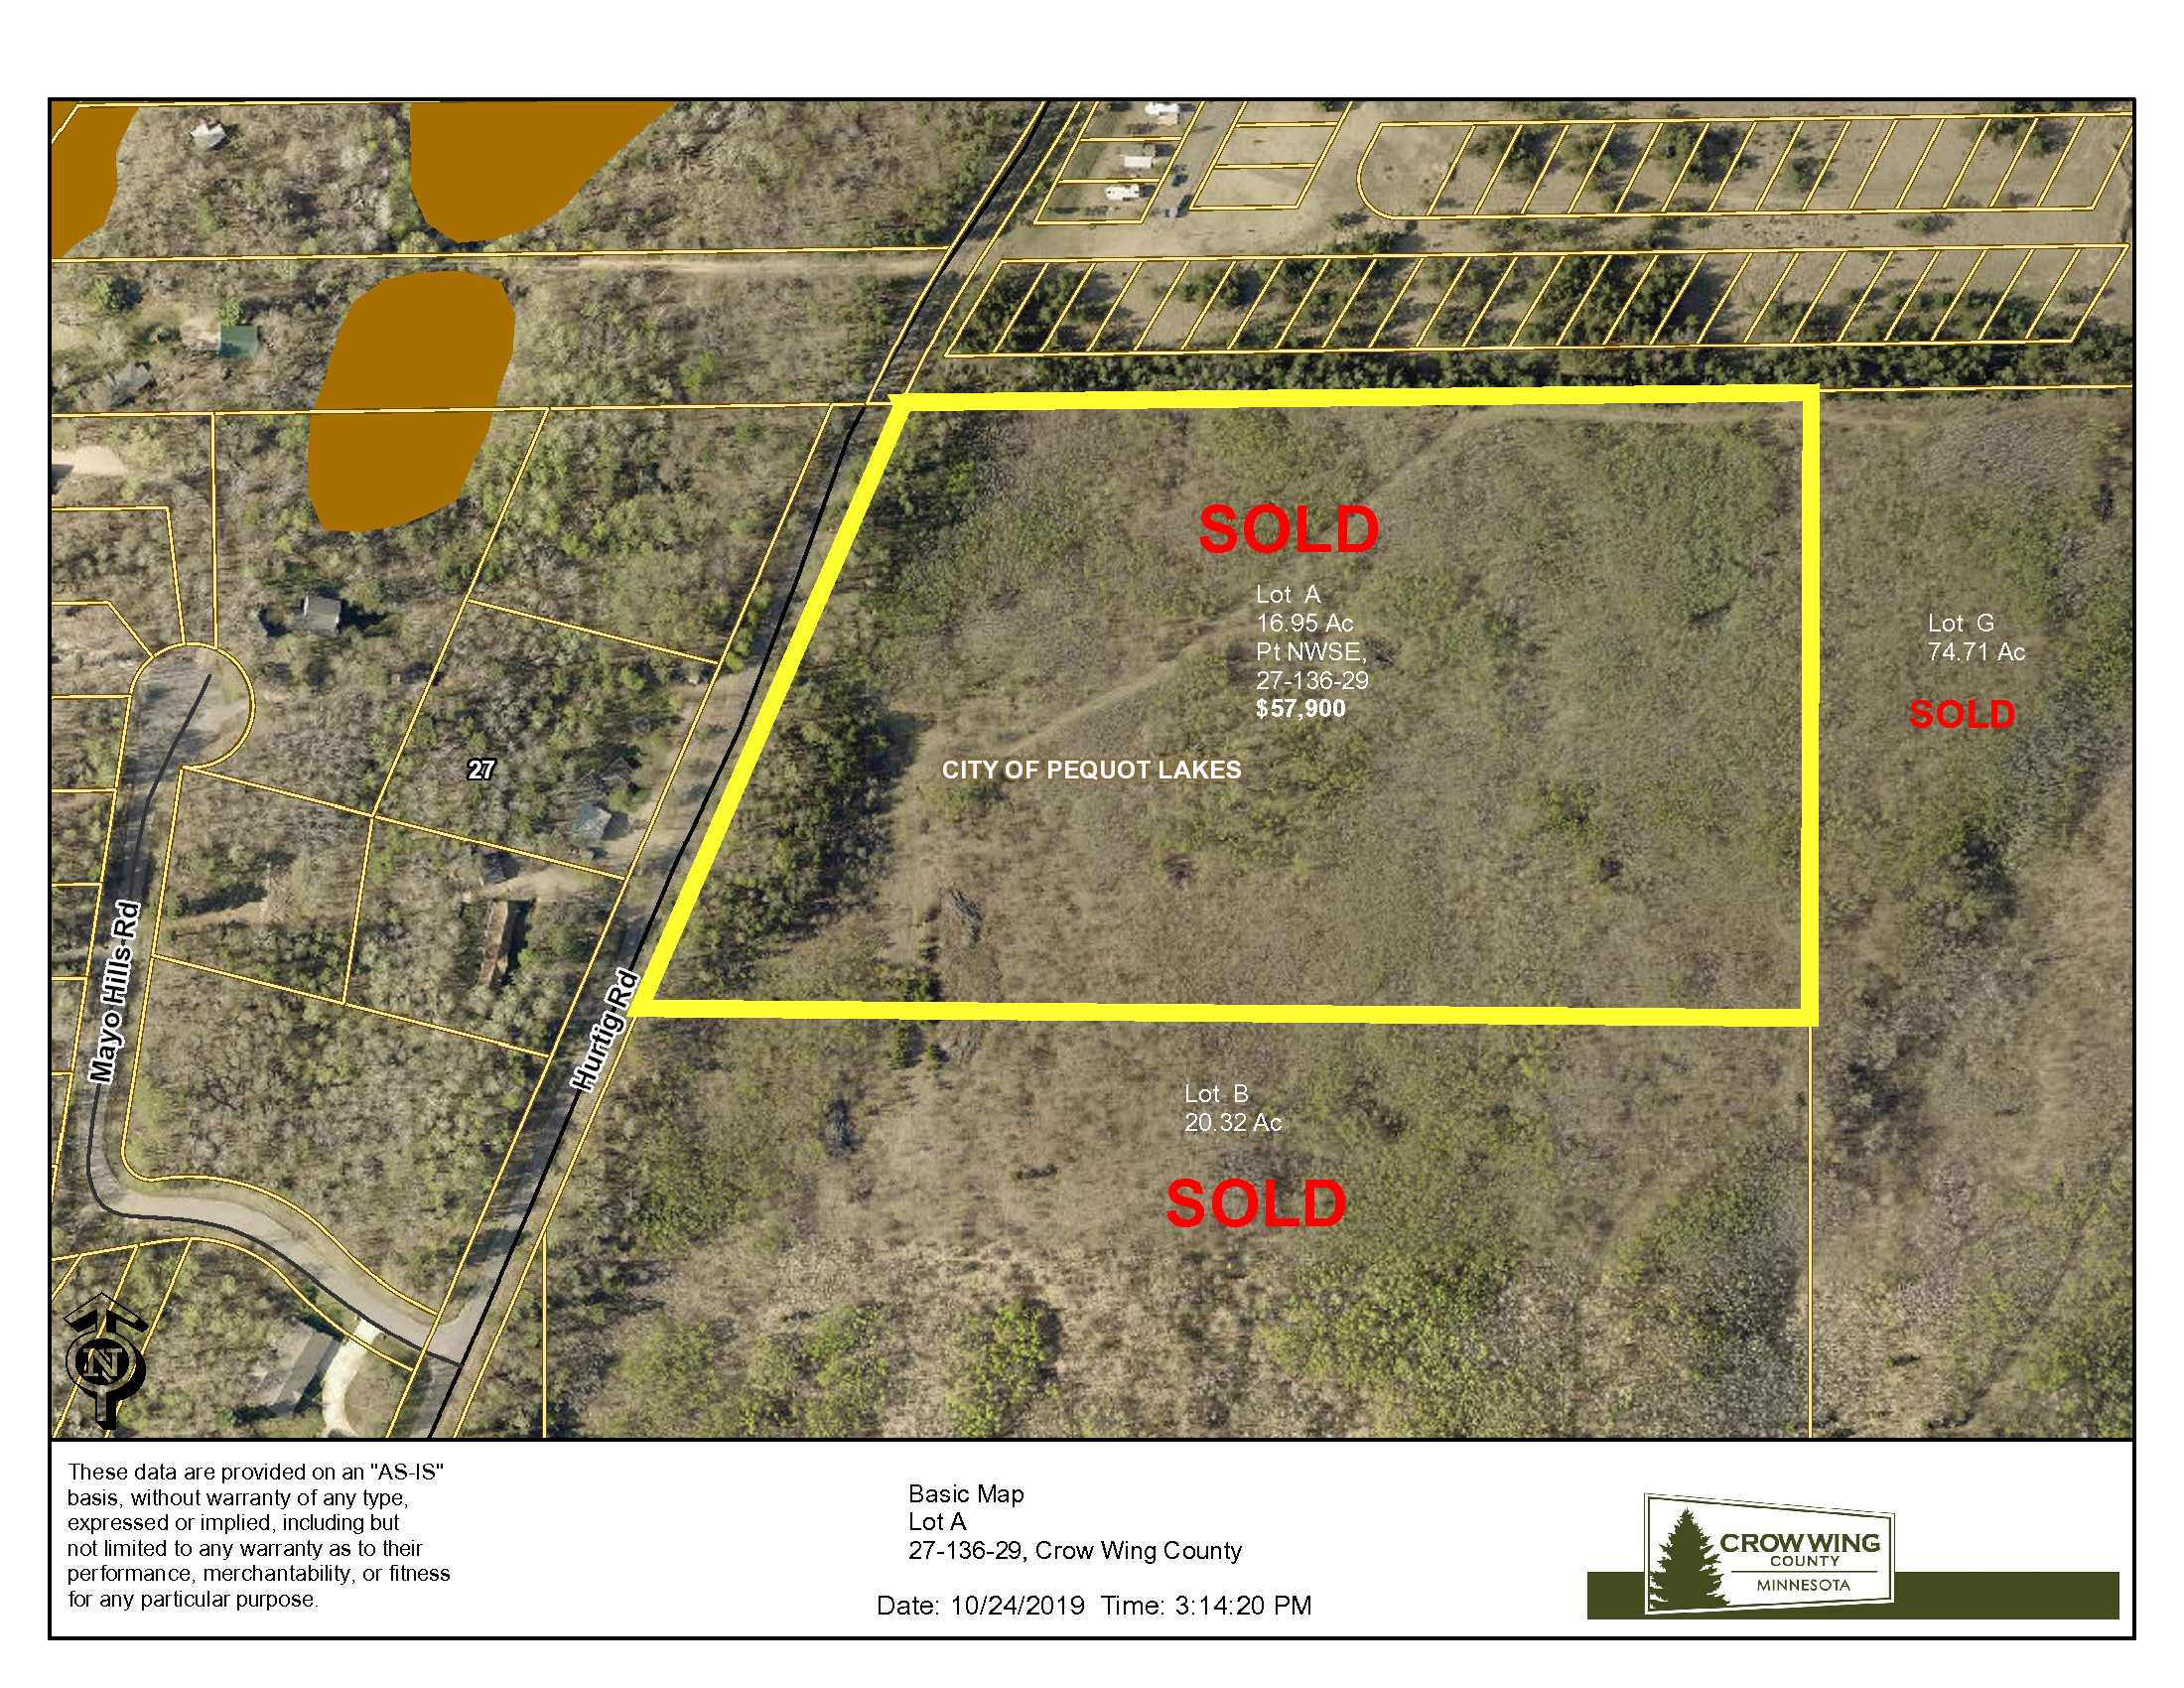 Lot A, 27-136-29, Hurtig Rd, Pequot Lakes, Crow Wing Co